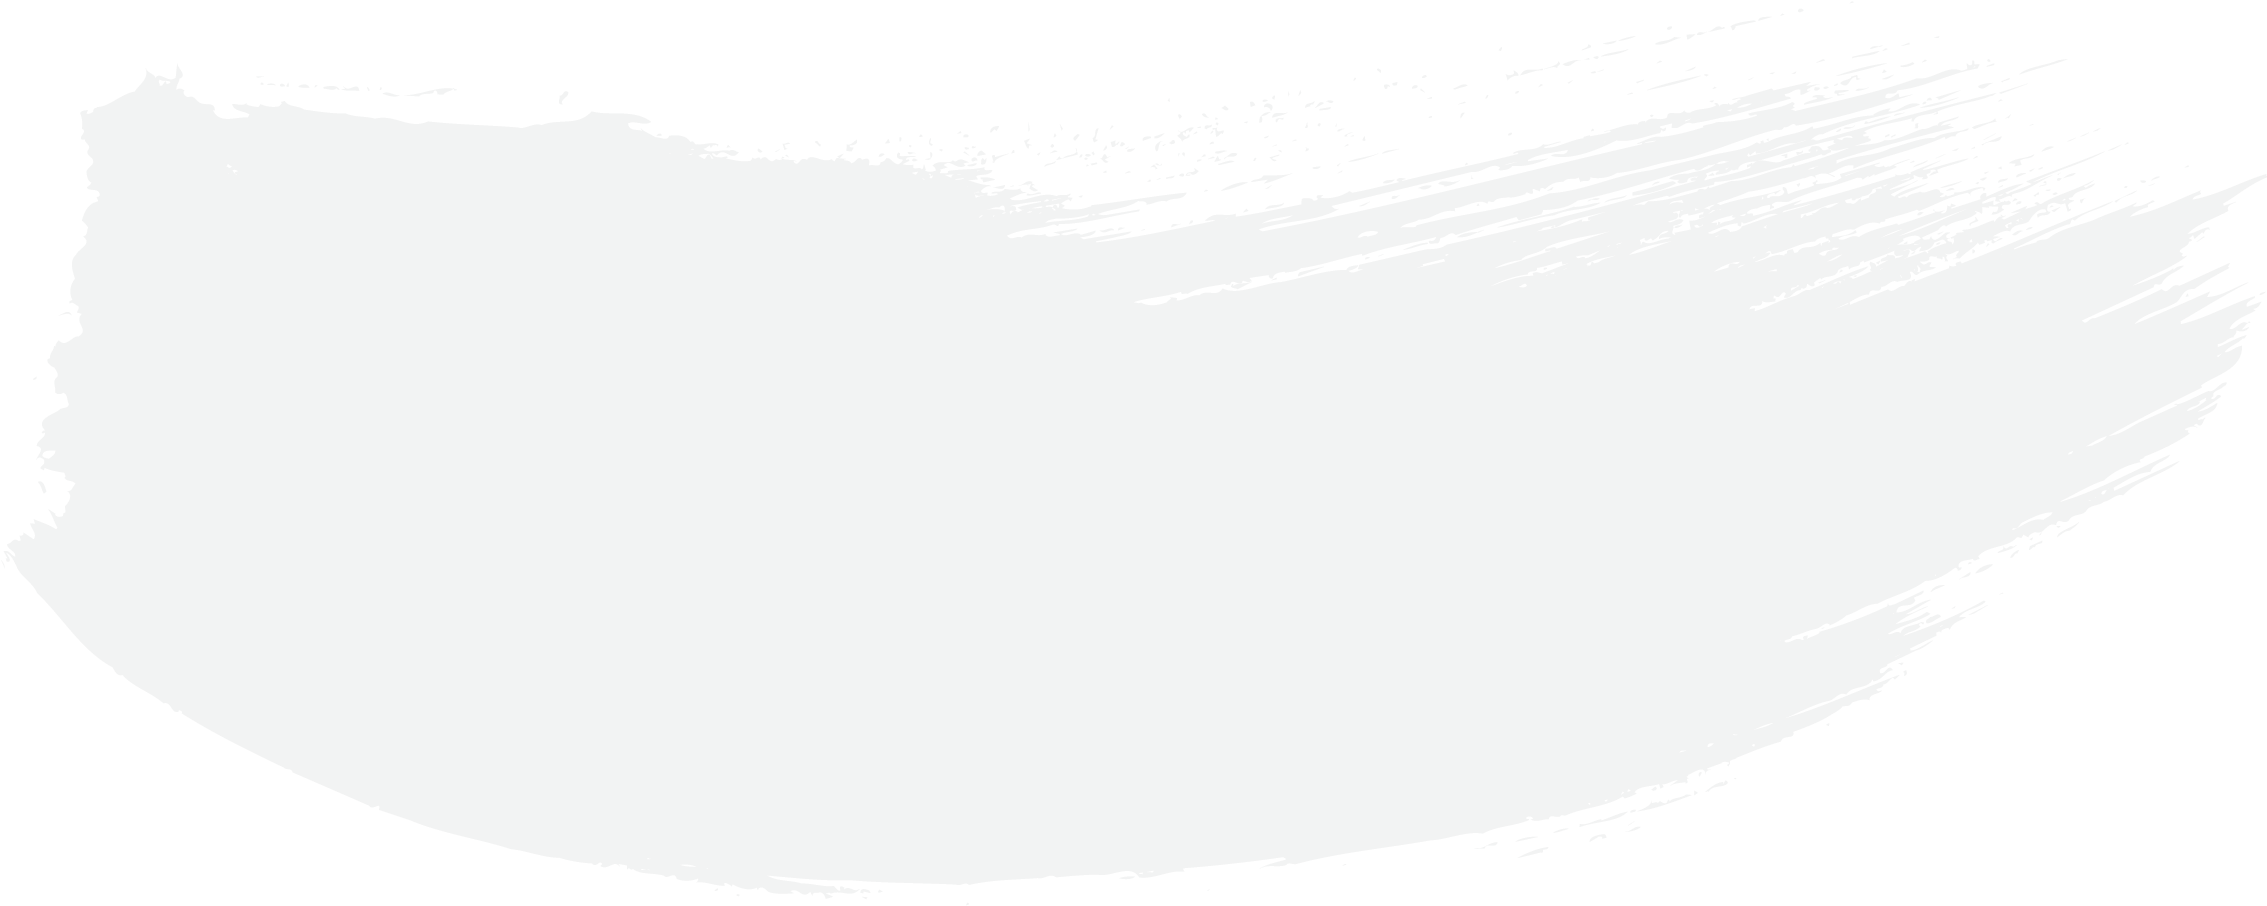 White brush stroke png. Download hd transparent image